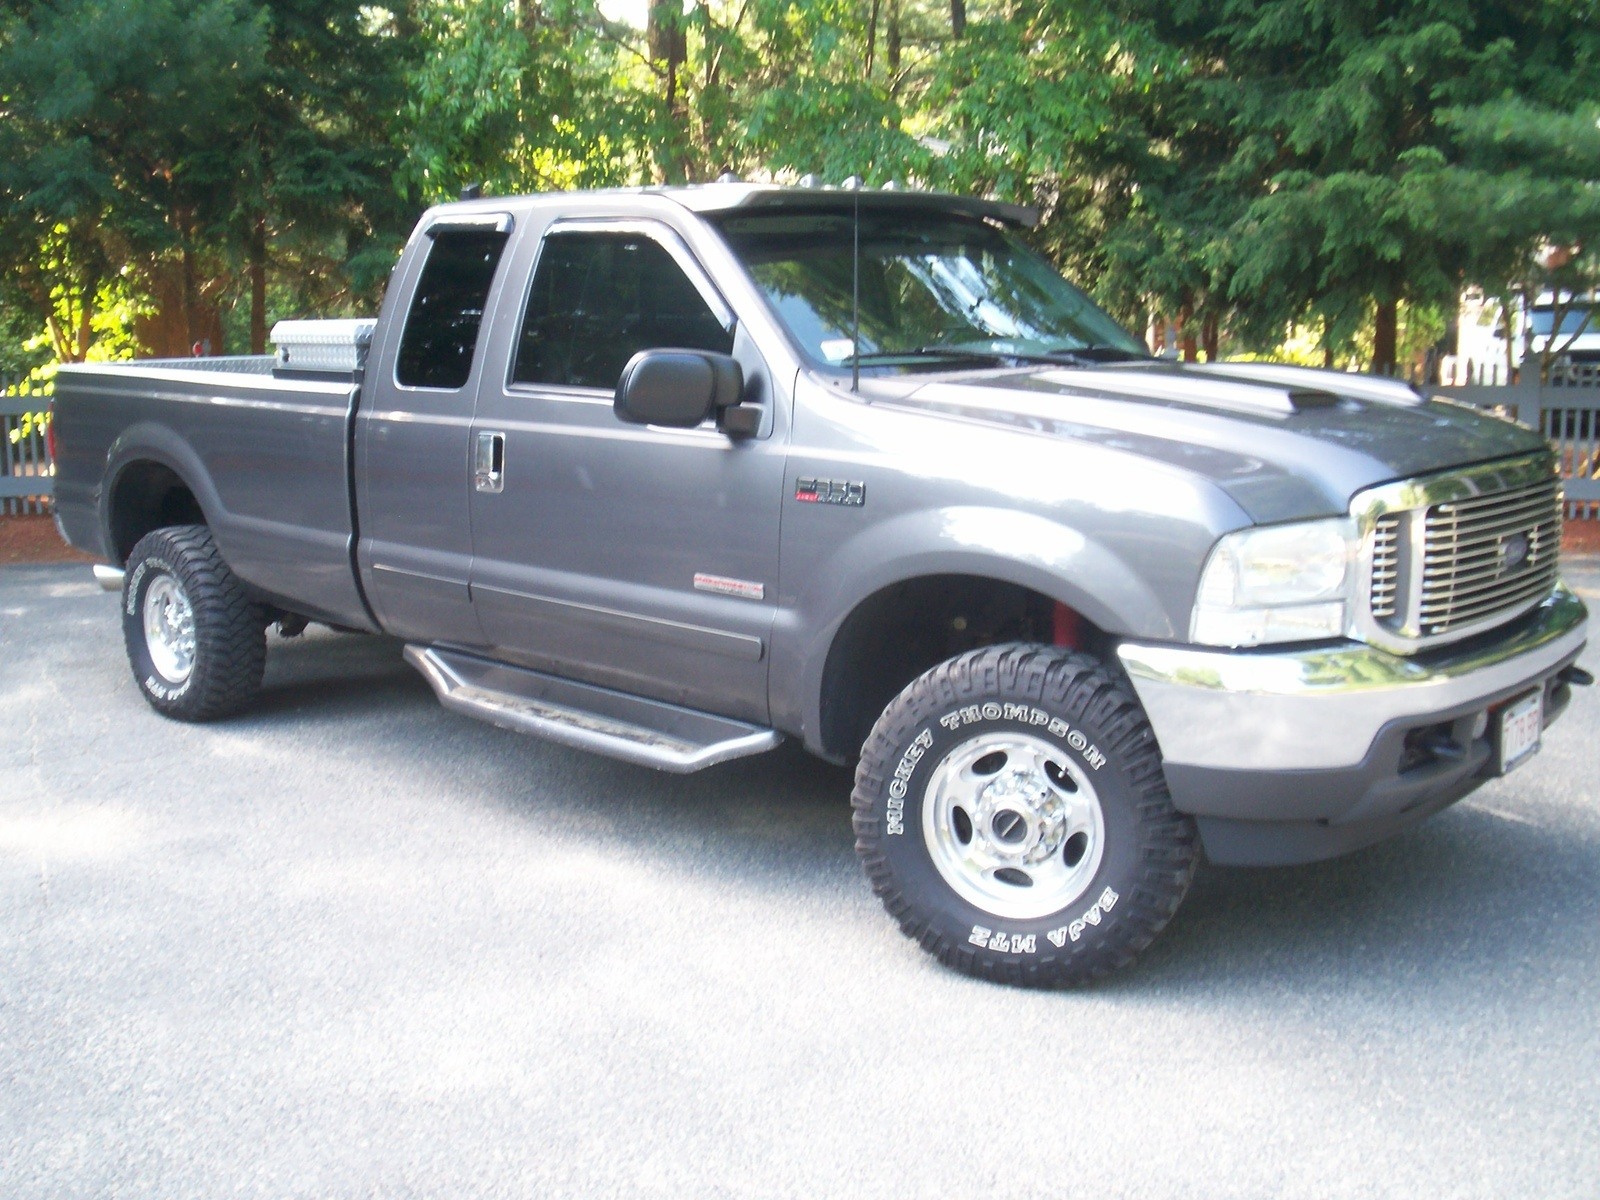 Picture of 2003 ford f 350 super duty lariat extended cab lb 4wd exterior